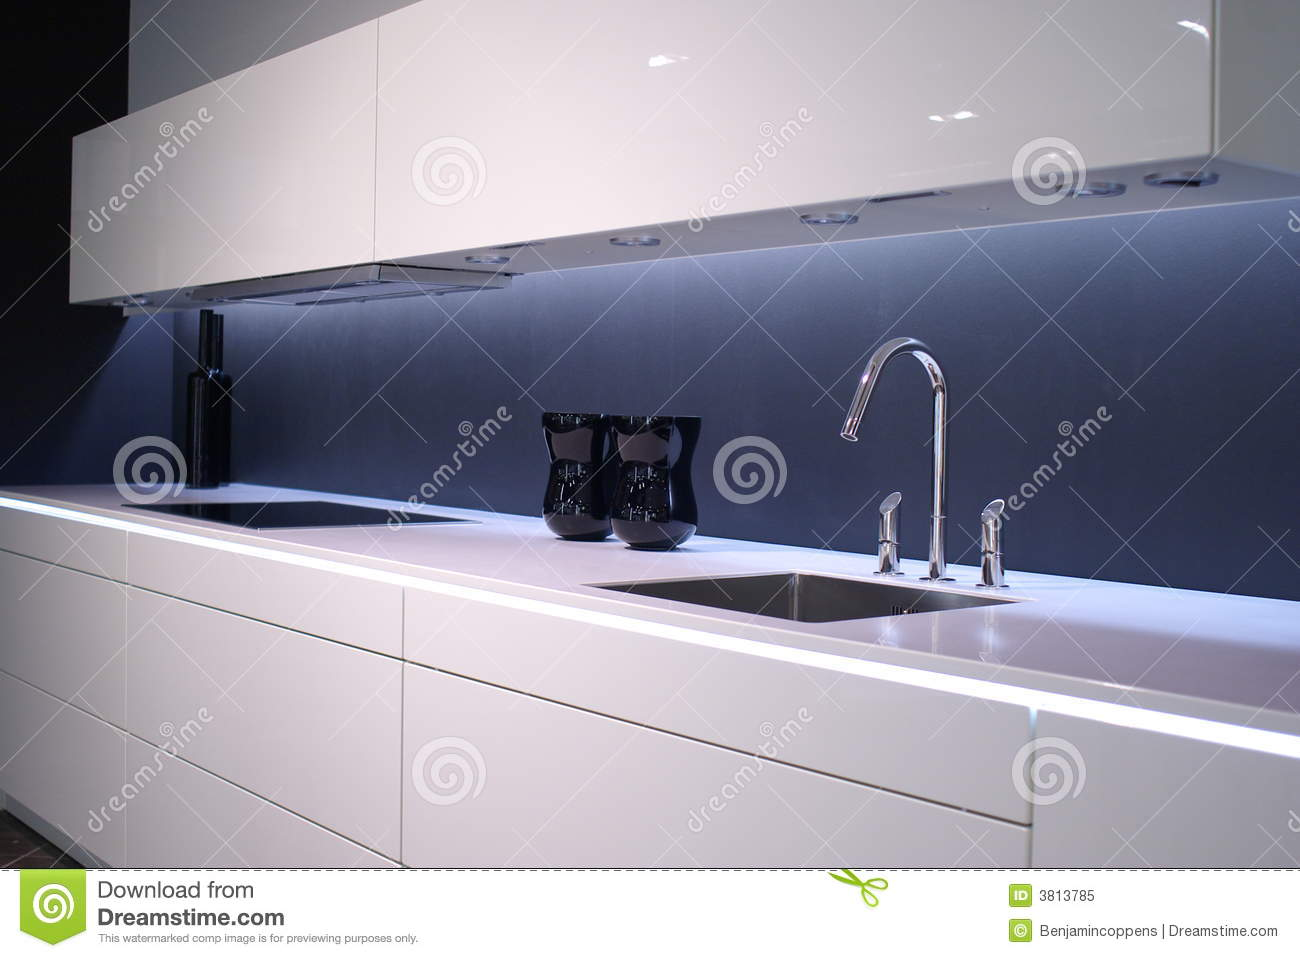 Modern kitchen sink